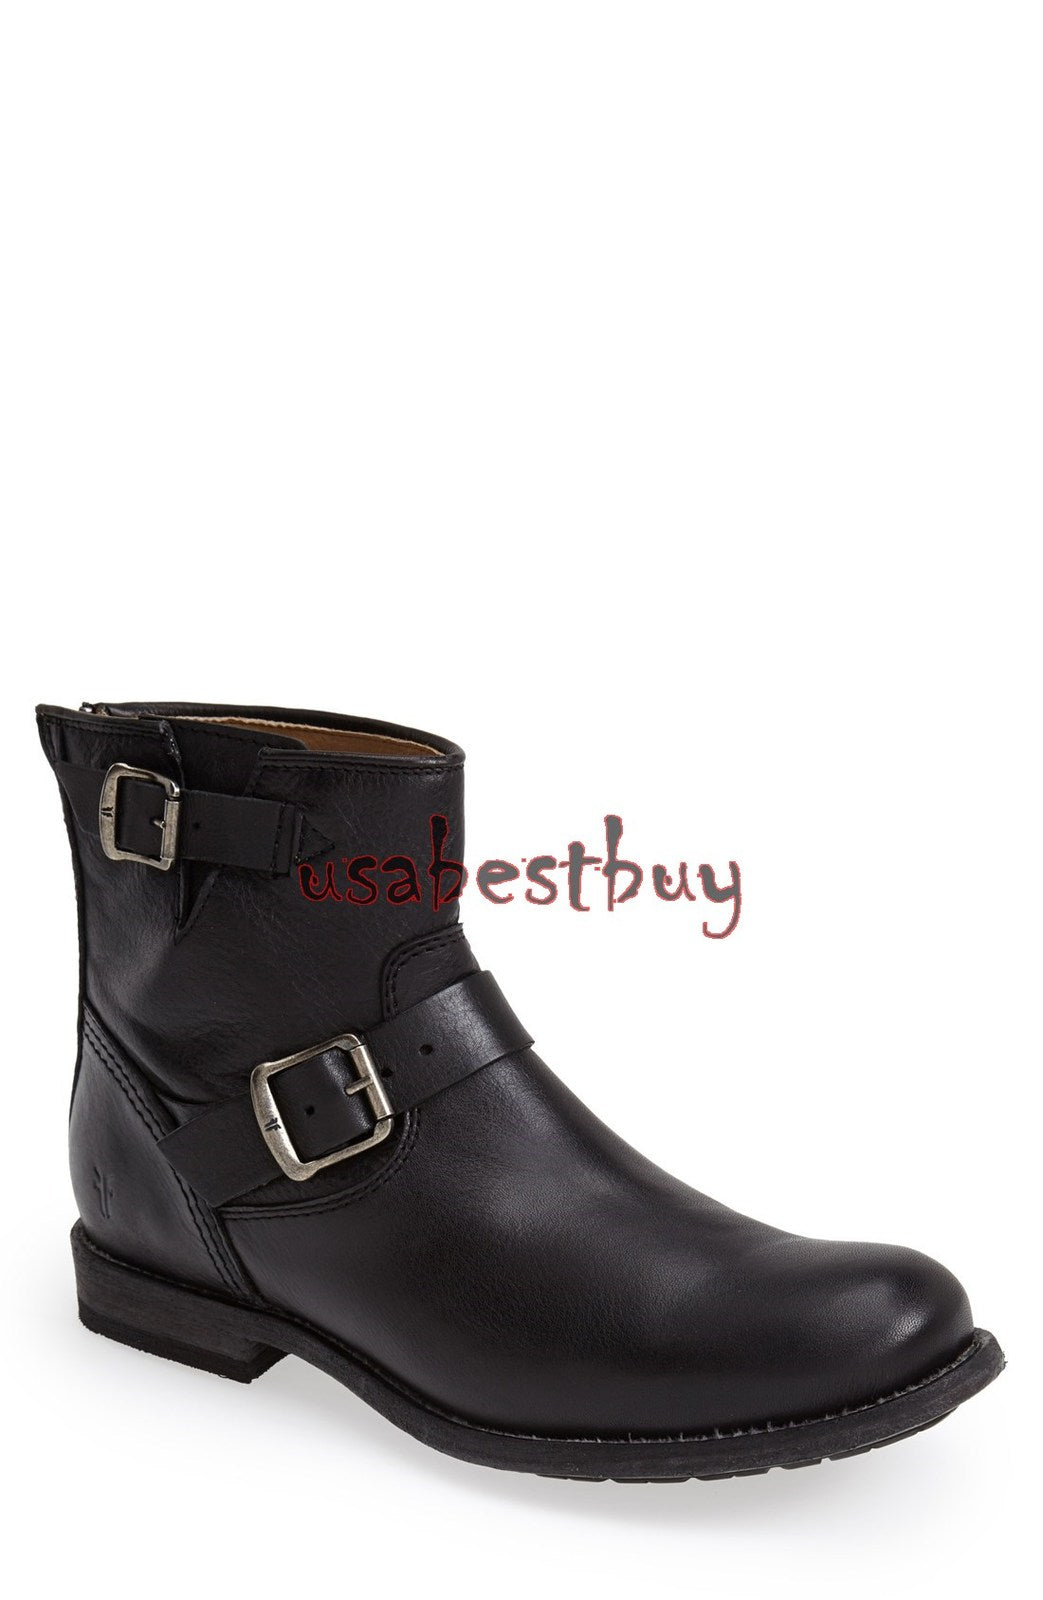 New Handmade Men Ankle High Style Genuine Leather Boots, Men Black Buckle Boots